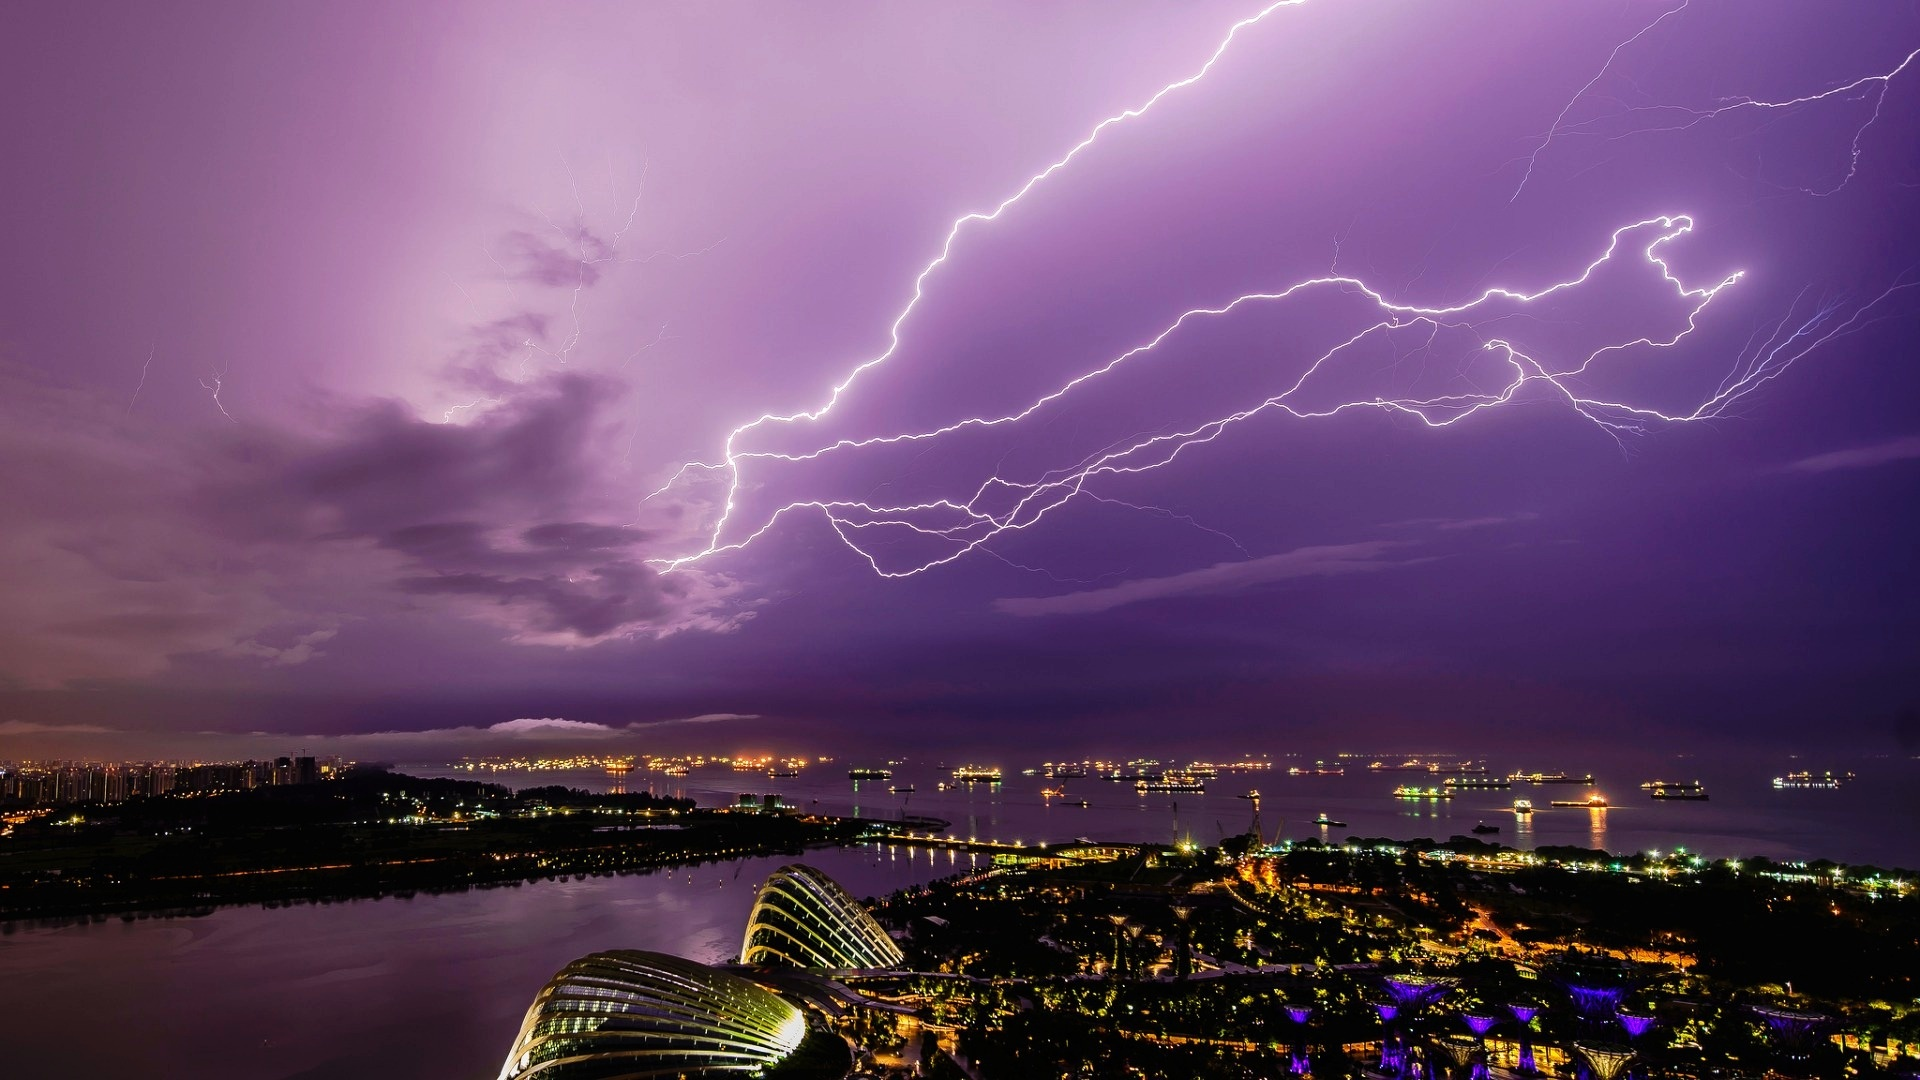 Singapore City Night Thunderstorm